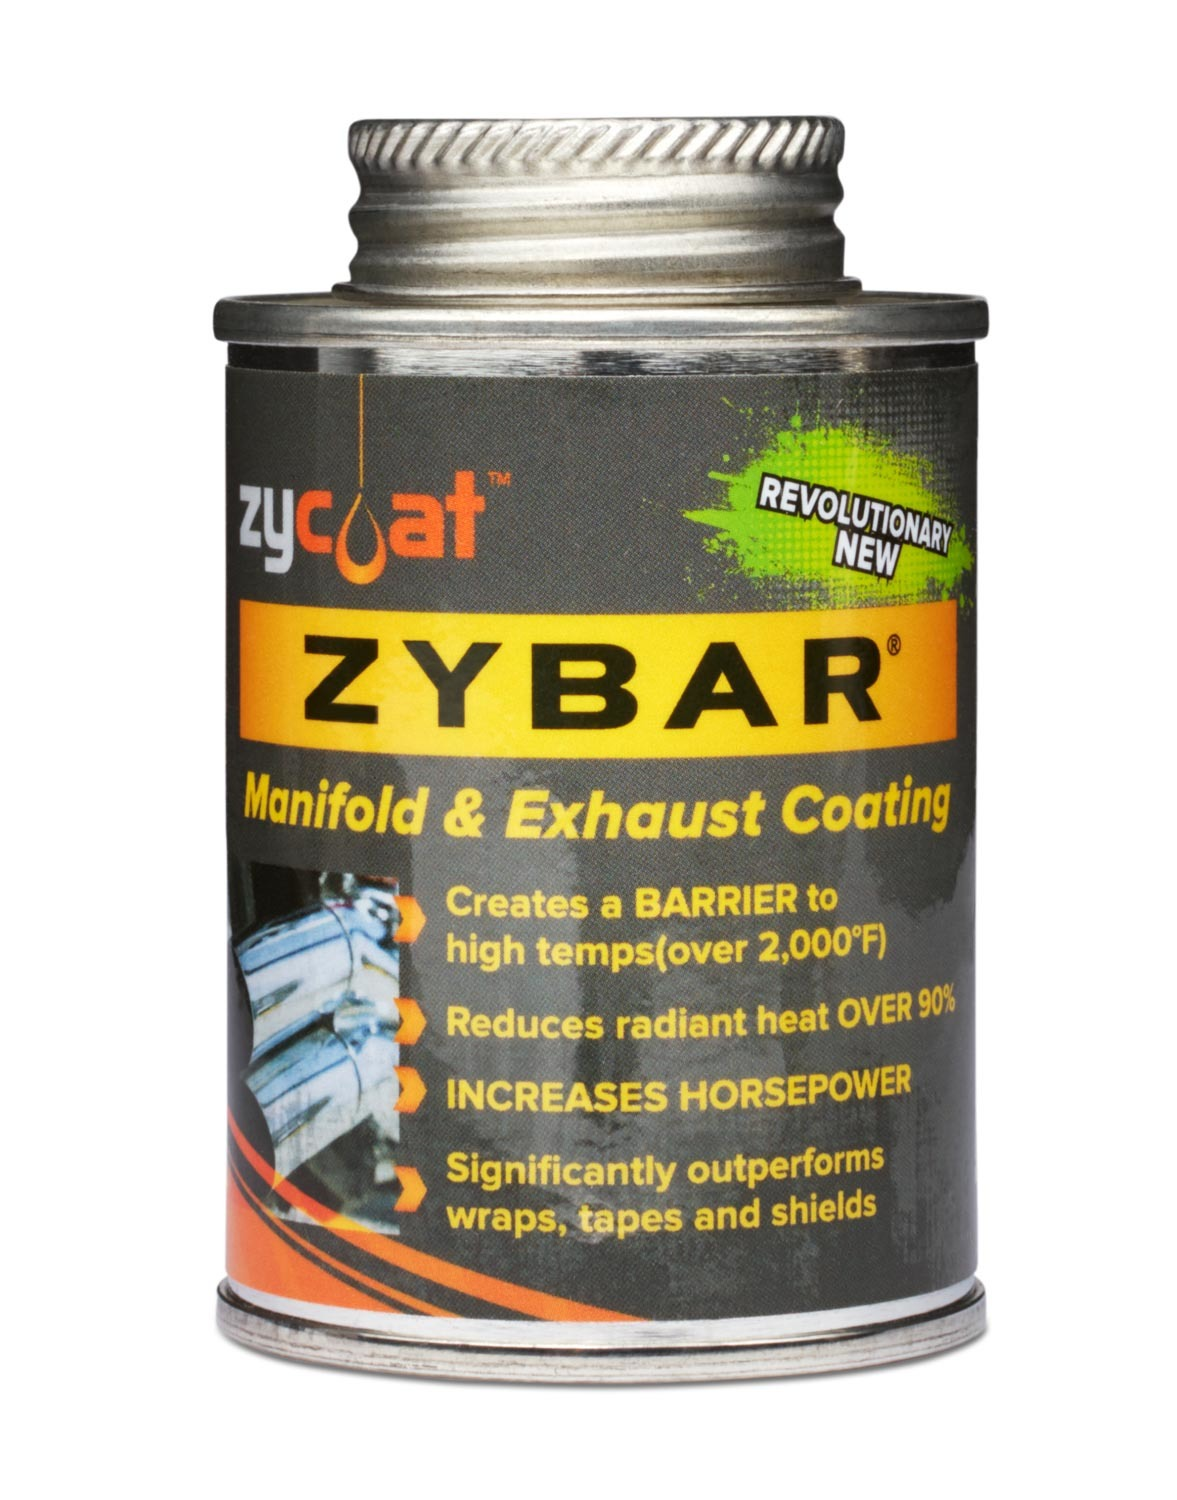 Zycoat 13004 Paint, Exhaust / Header, High Temperature, Ceramic Urethane, Cast Iron Gray, 4 oz Can, Each